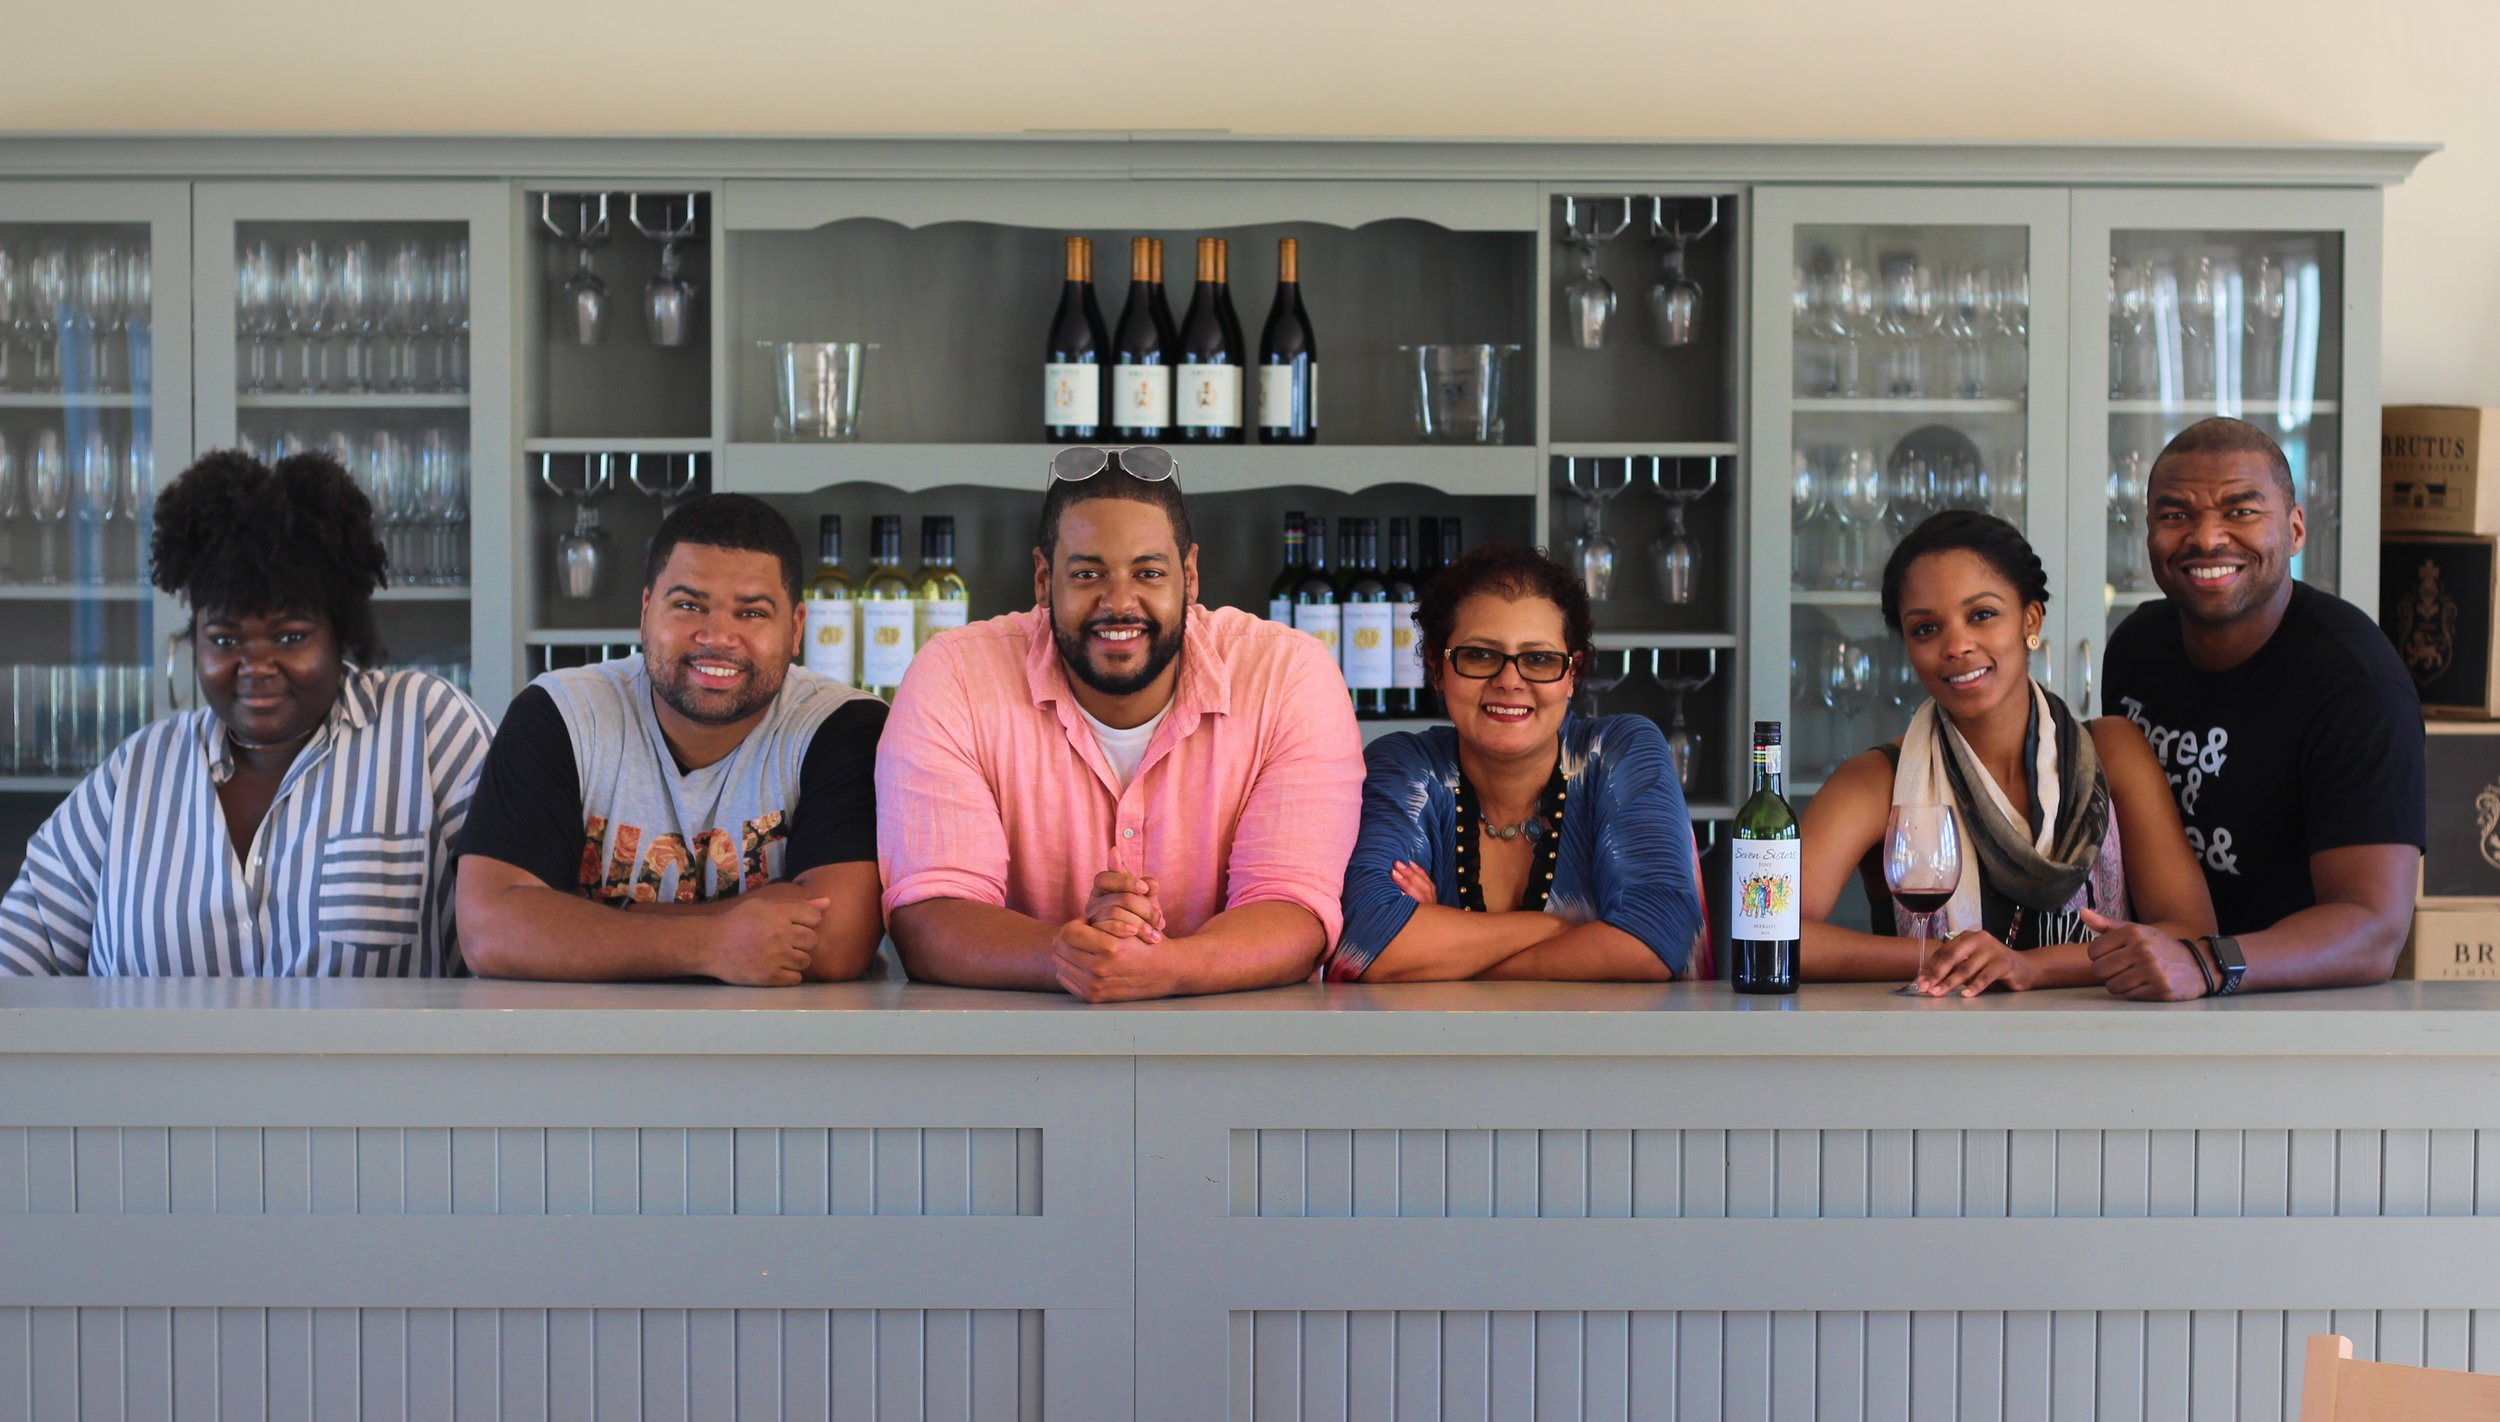 Before leaving Seven Sisters Wine, we made sure to get behind the bar to snap a shot with Vivian, one of the owners.